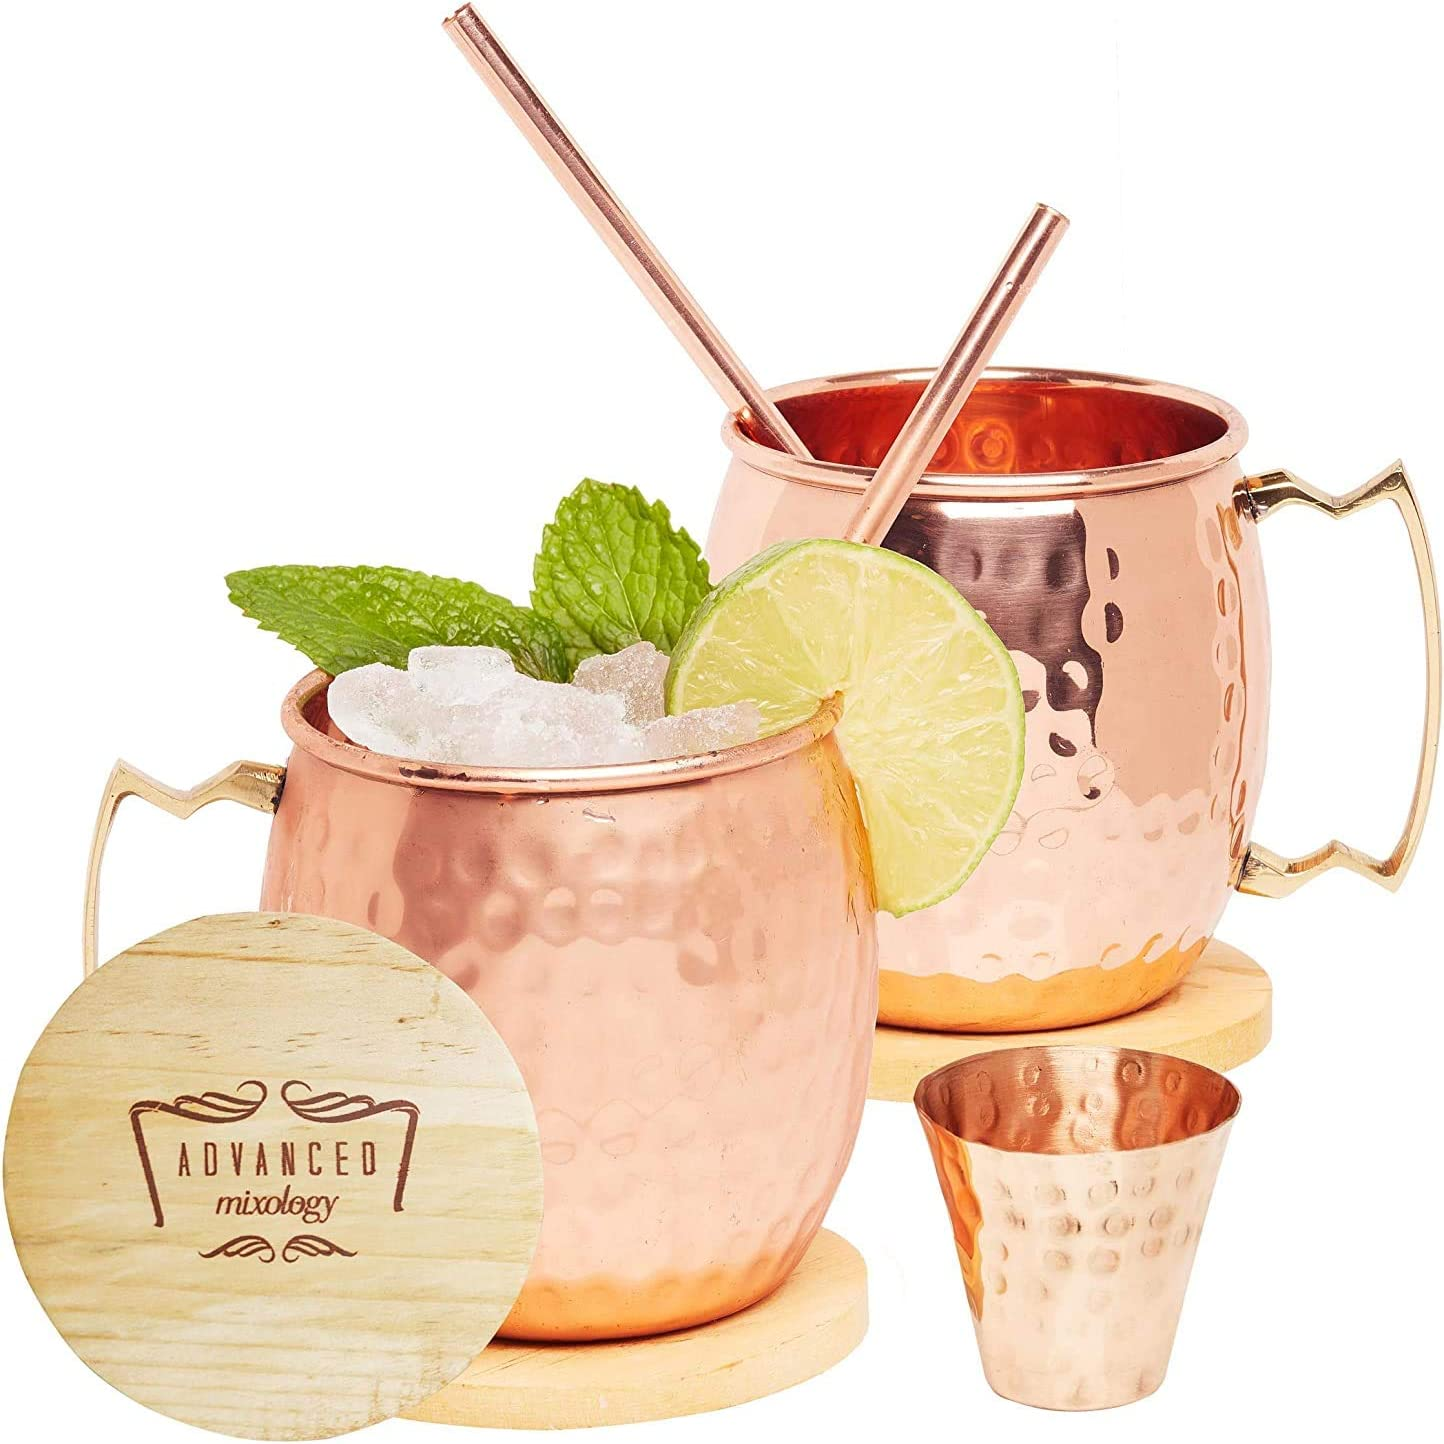 Brush Coaster 13 oz Handmade Cocktail Copper Mug Set with Straw Moscow Mule Mugs Jigger 100/% Pure Copper Hammered Stainless Steel Cups